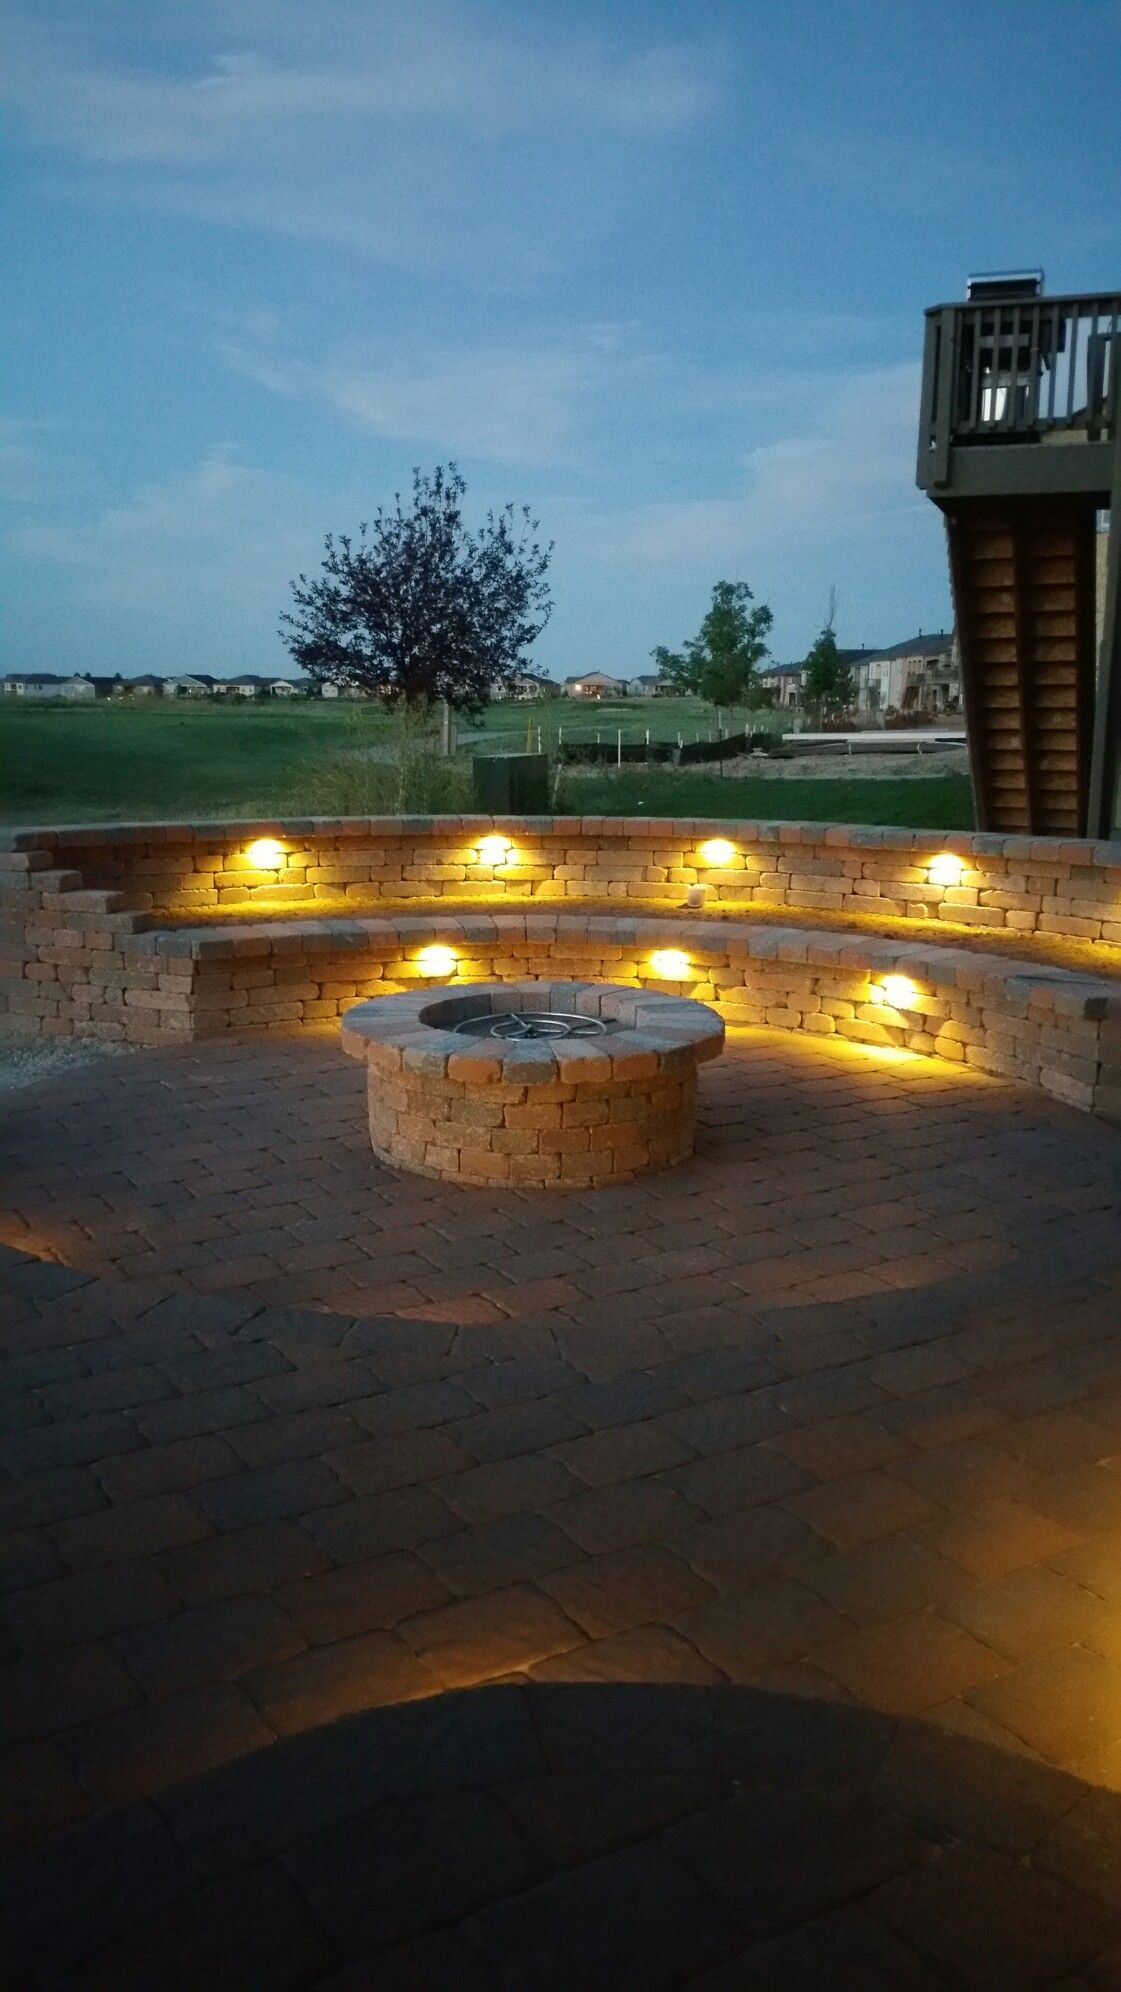 St. Vrain Block's Dublin Giant Patio and Quarry Stone Fire Pit and Raised Planter/Sitting Area. Click on the image to visit our website.  We are located in Dacono, Colorado and can be reached at 303-833-4144.